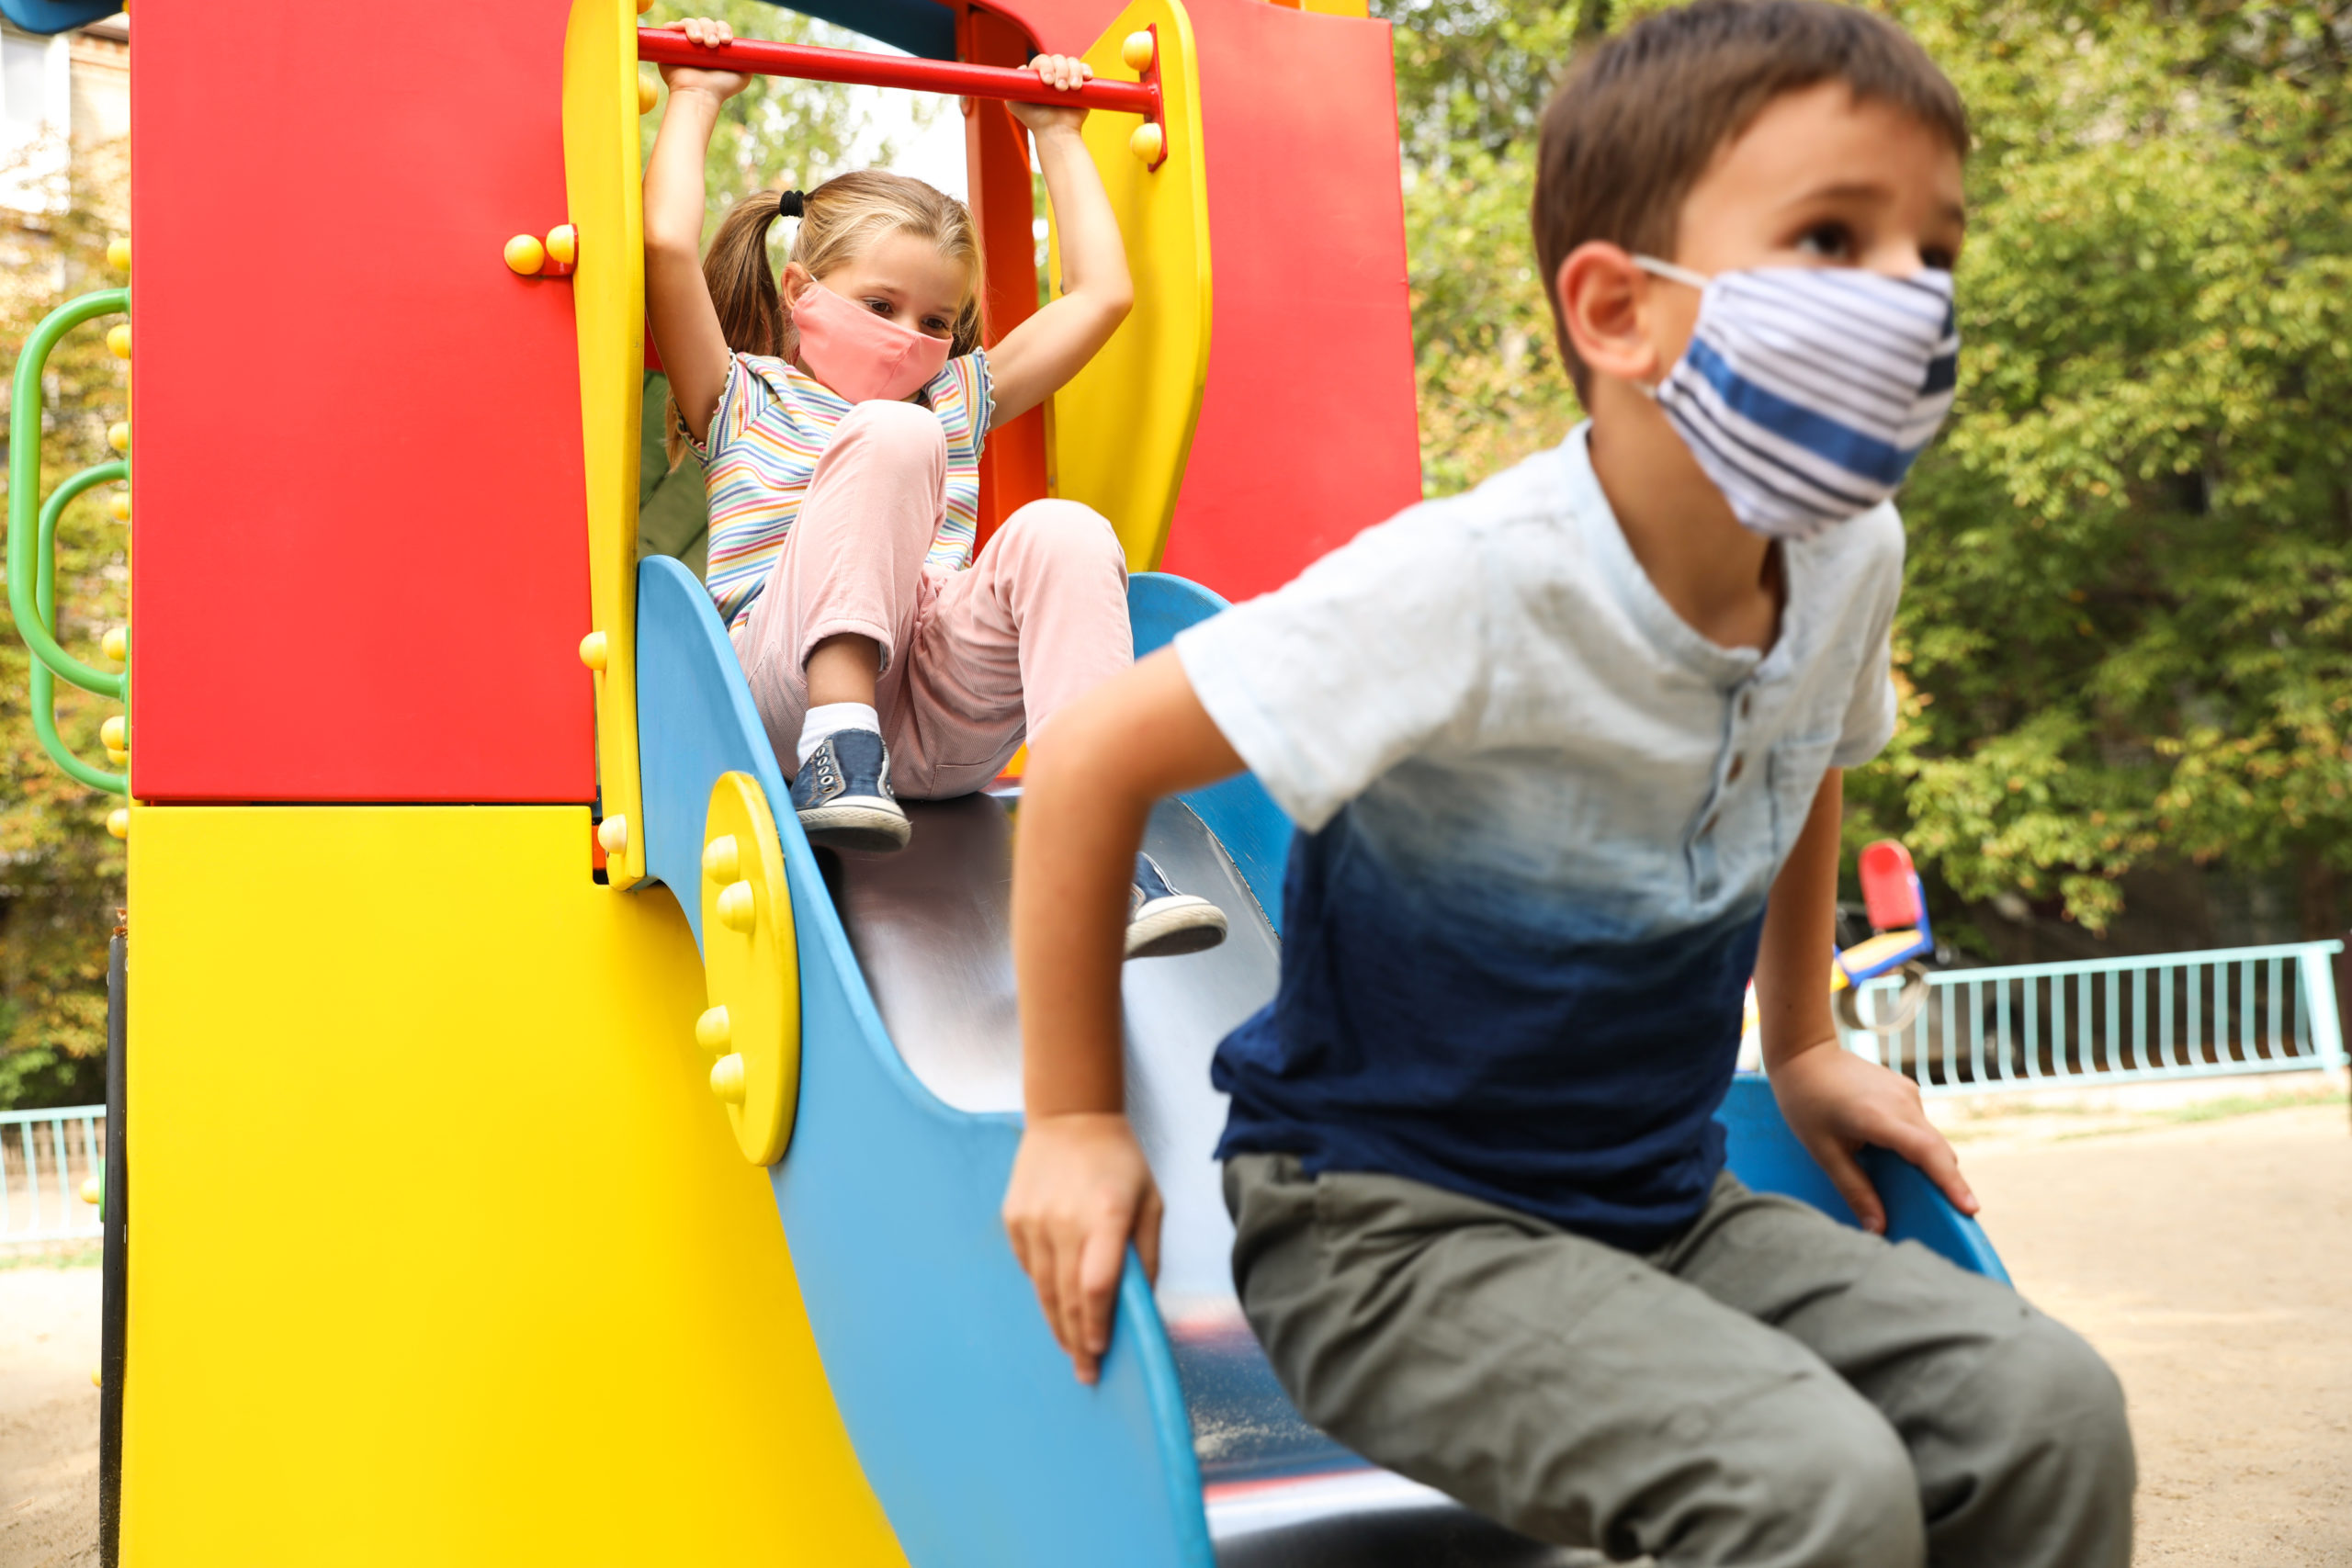 How To Keep Children Safe During The Pandemic